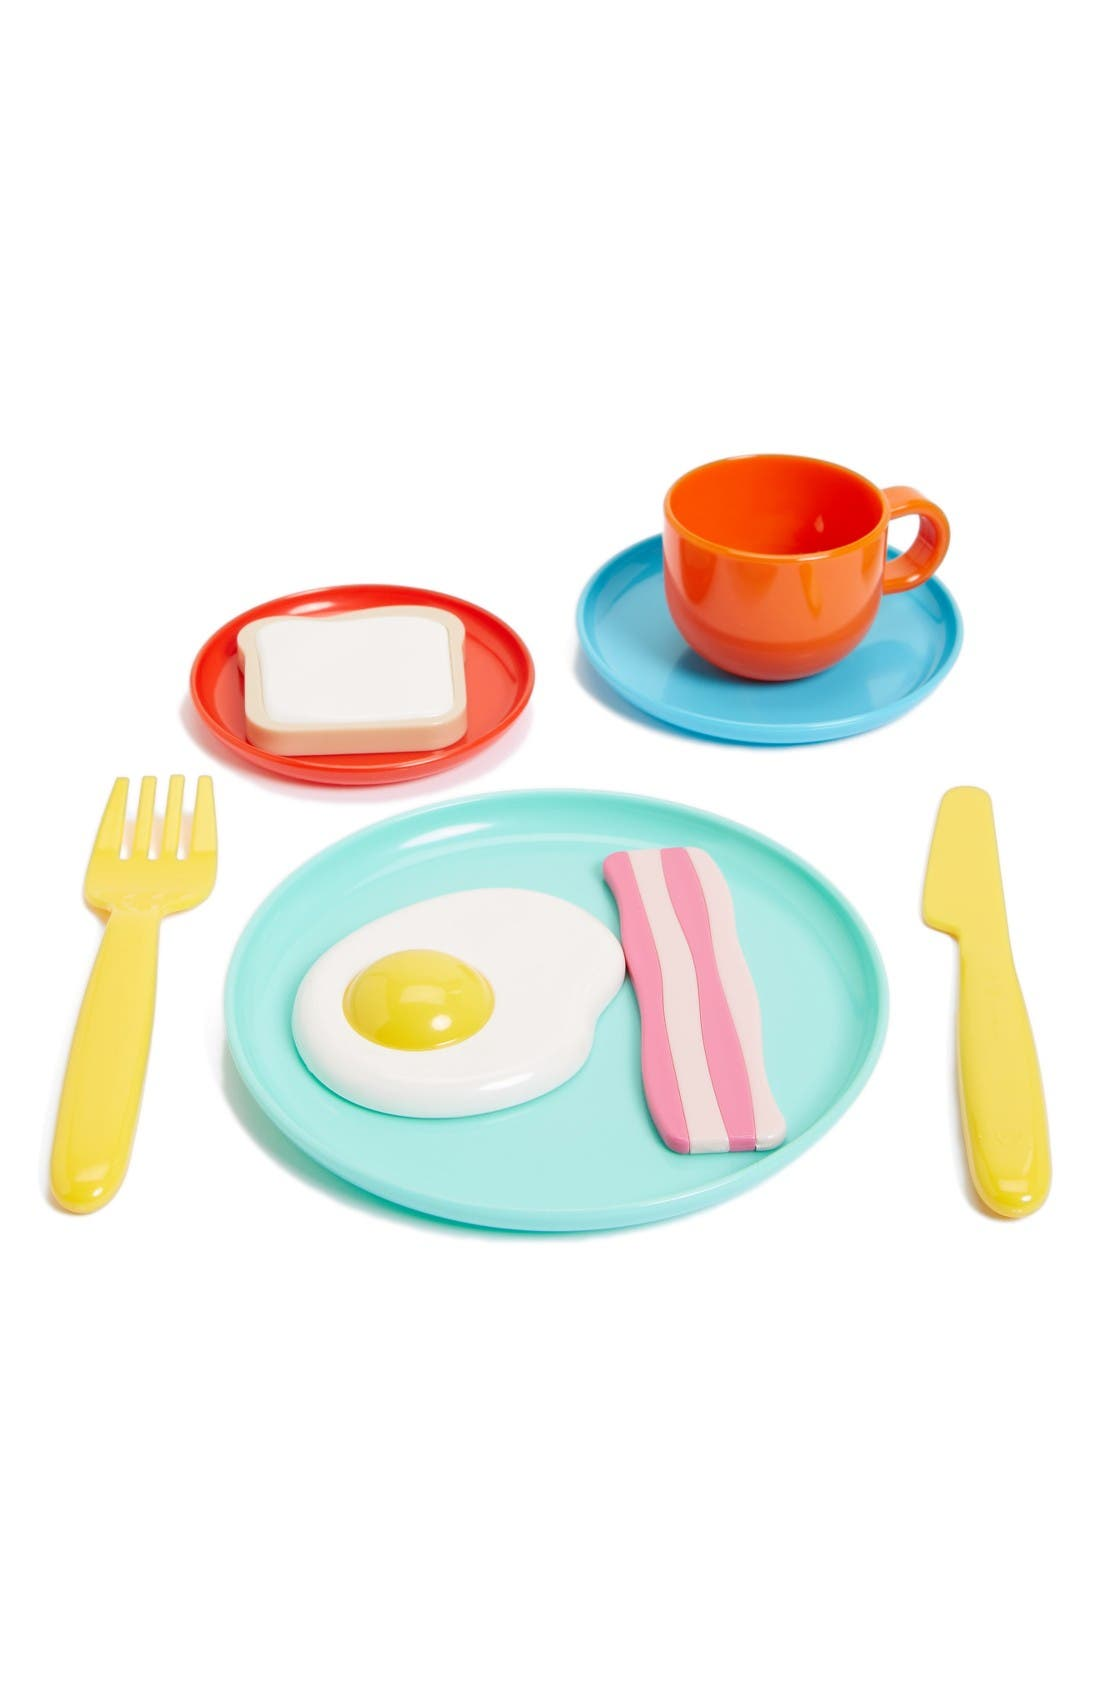 KID O Rise & Shine Toy Set